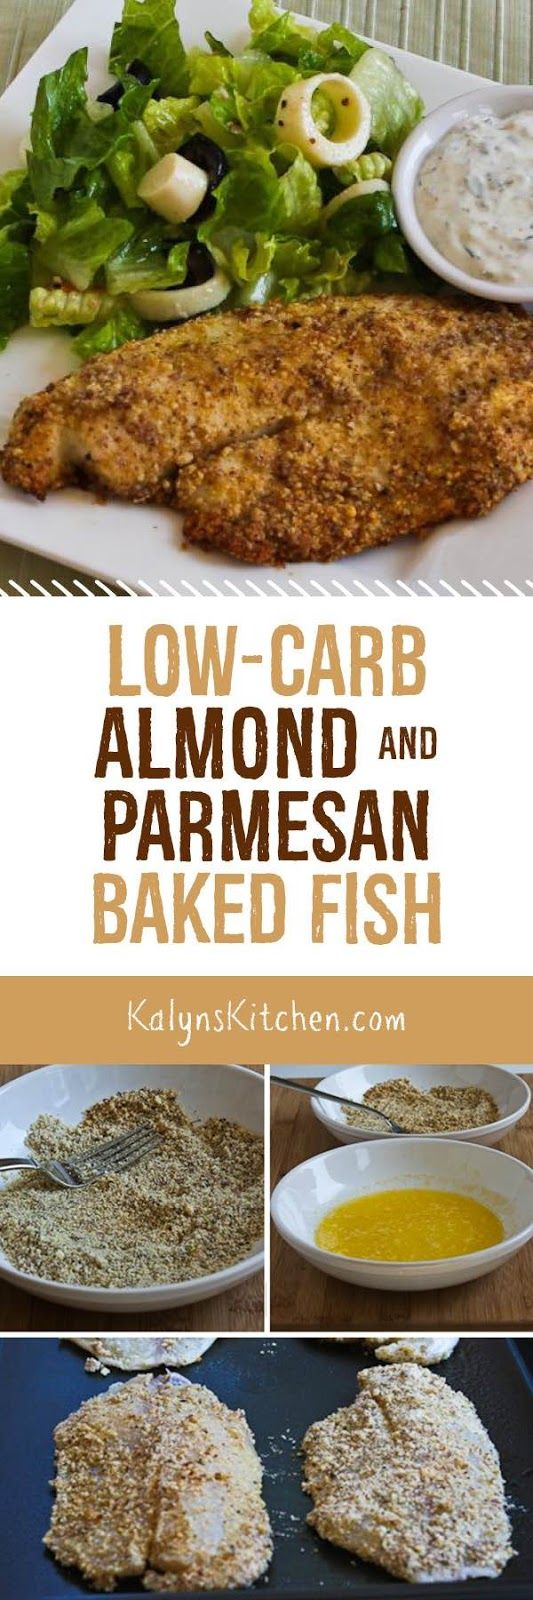 LOW-CARB ALMOND AND PARMESAN BAKED FISH